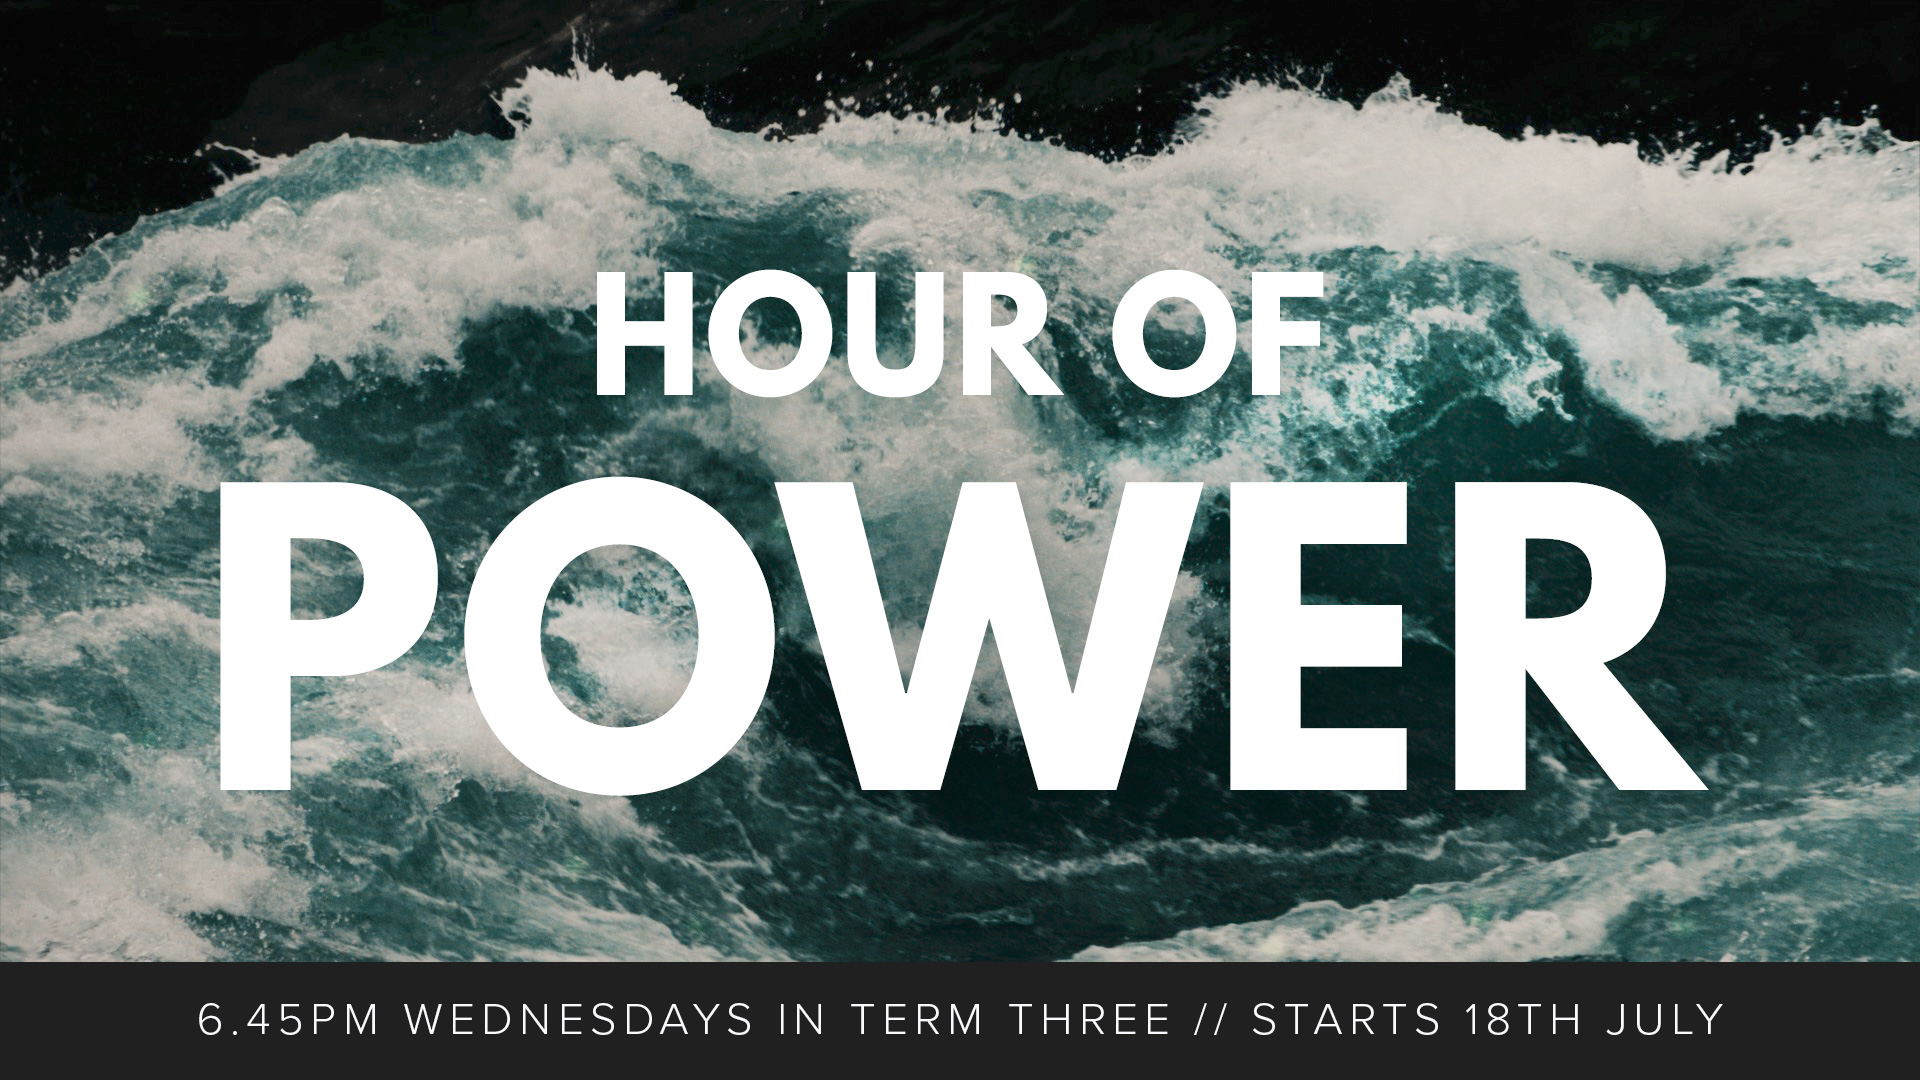 Hour-of-power-web-feature.jpg